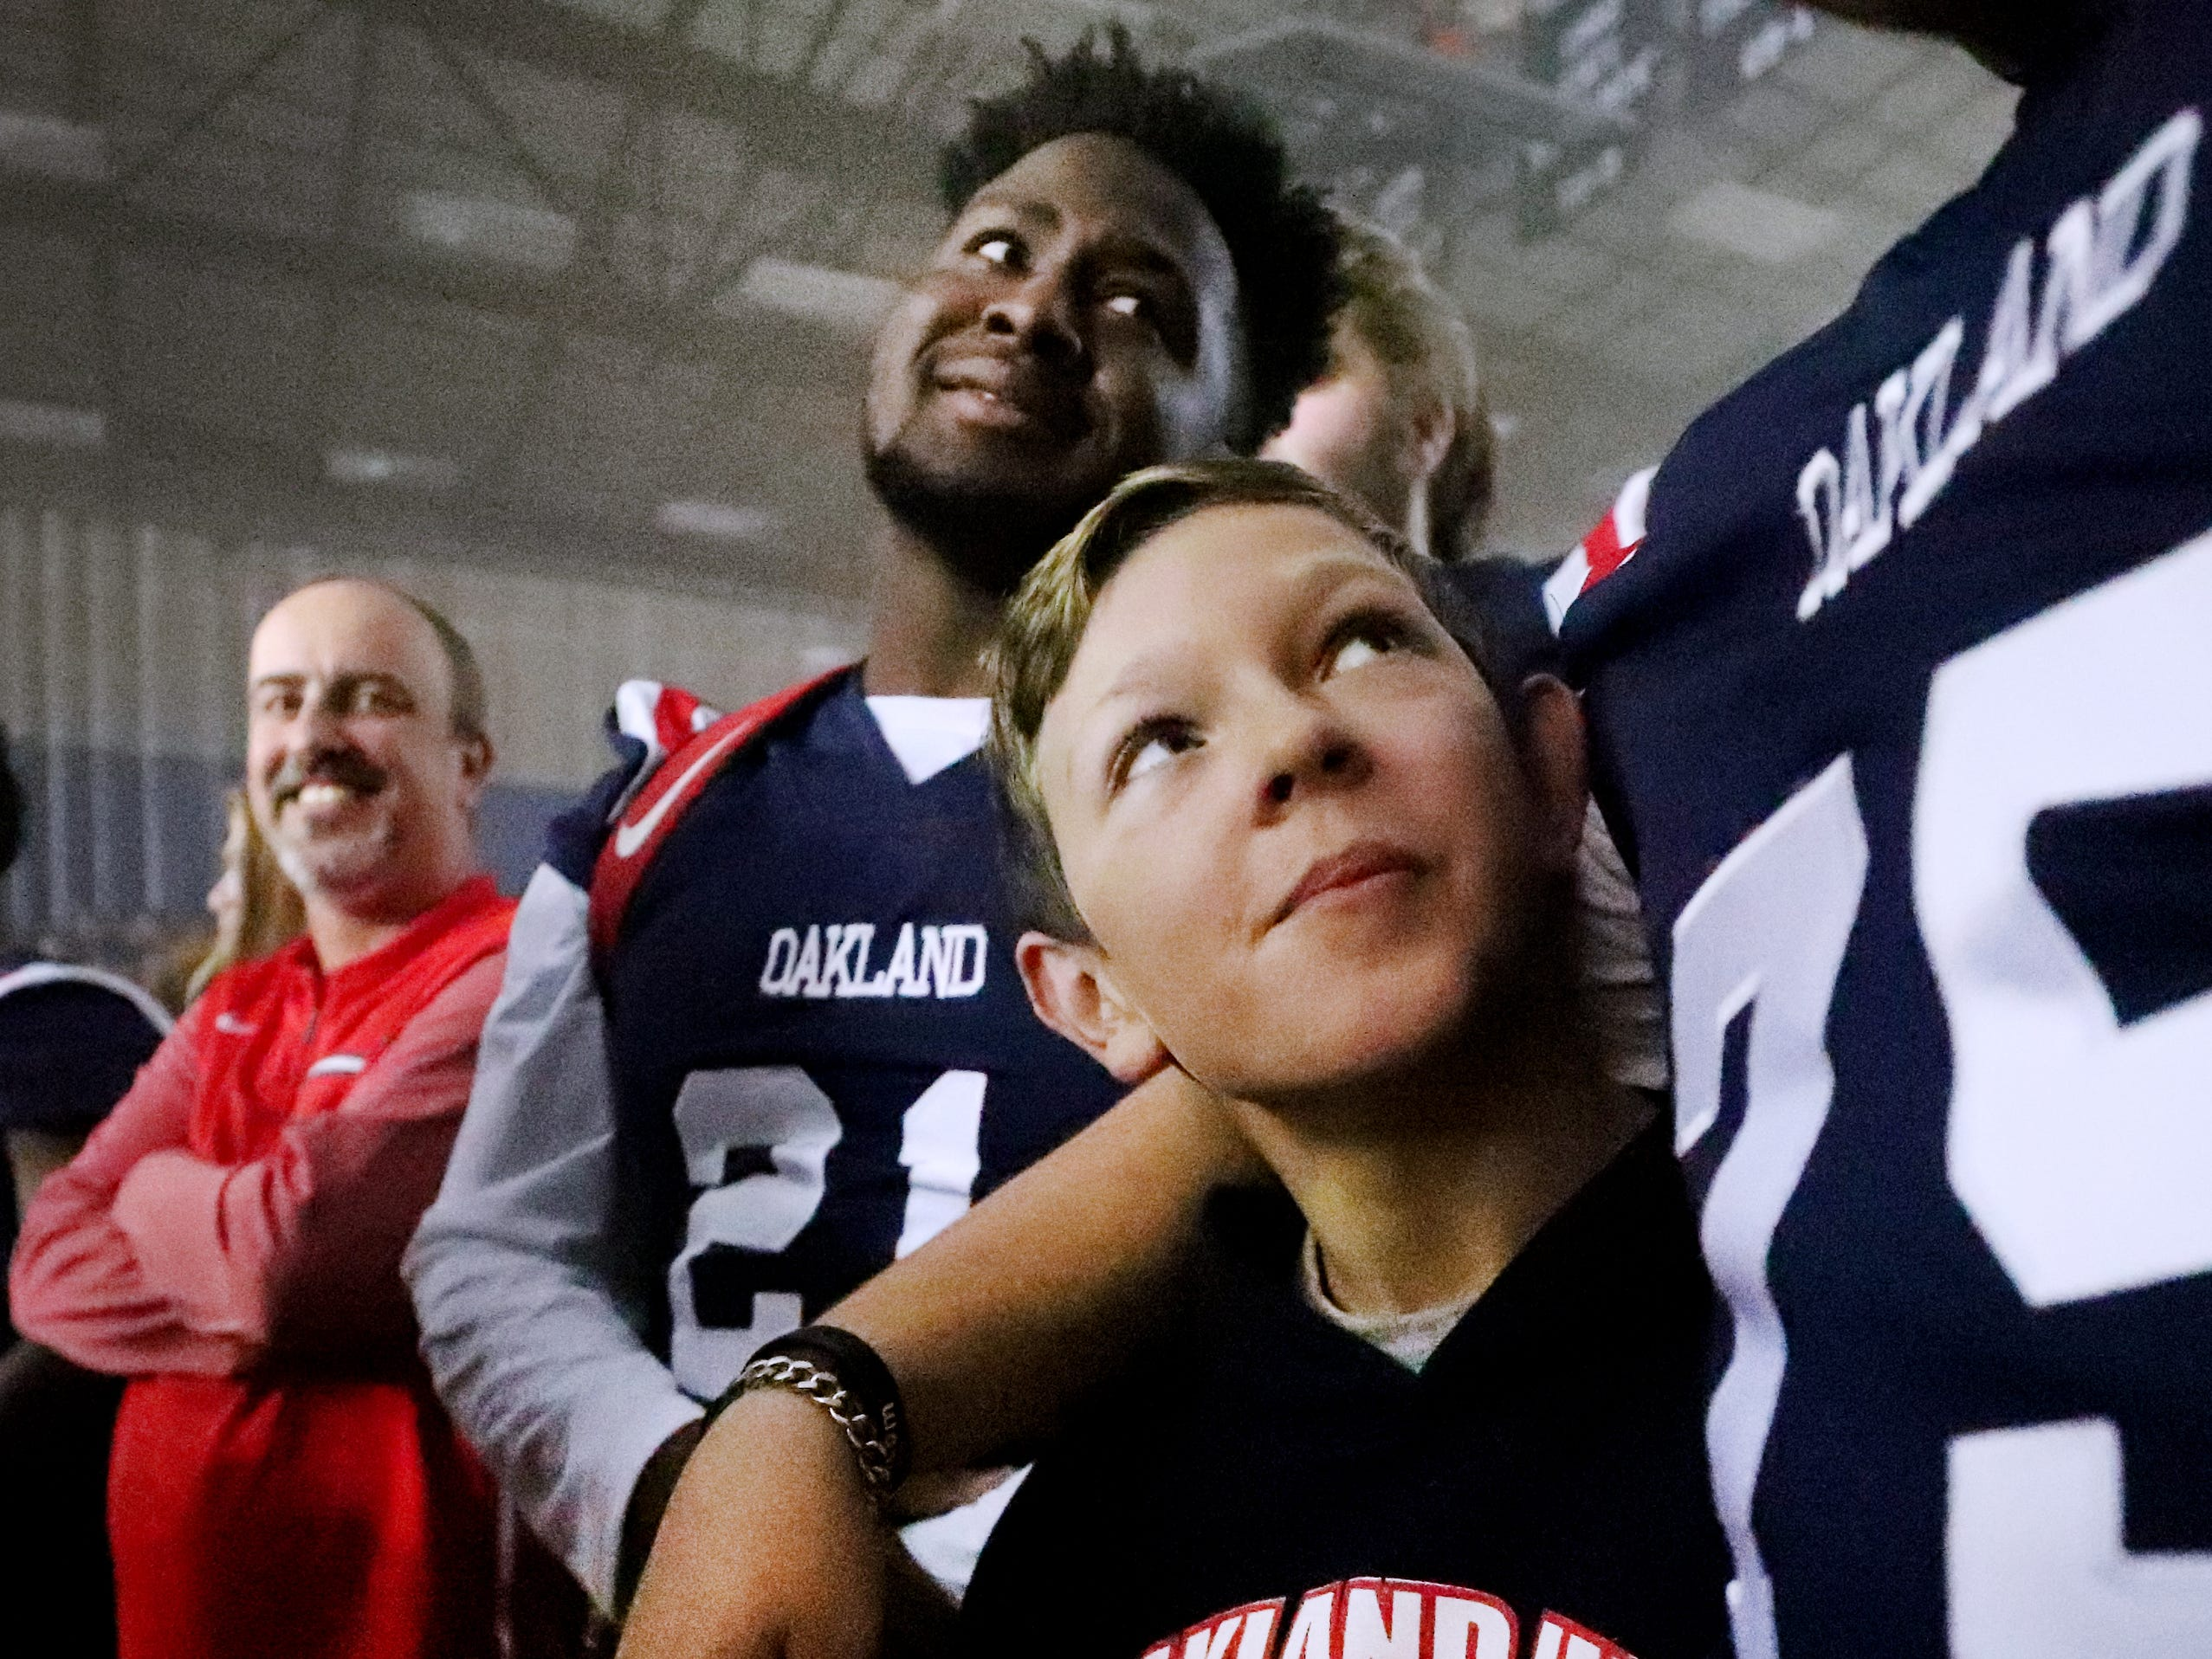 Kyler Creasy, the son of Oakland High School head football coach Kevin Creasy, looks up at Oakland player Kain Williams (75) during a pep rally, on Monday, Dec. 3, 2018 at the school after the football team won the 6A State Championship BlueCross Bowl game against Westhaven on Thursday.